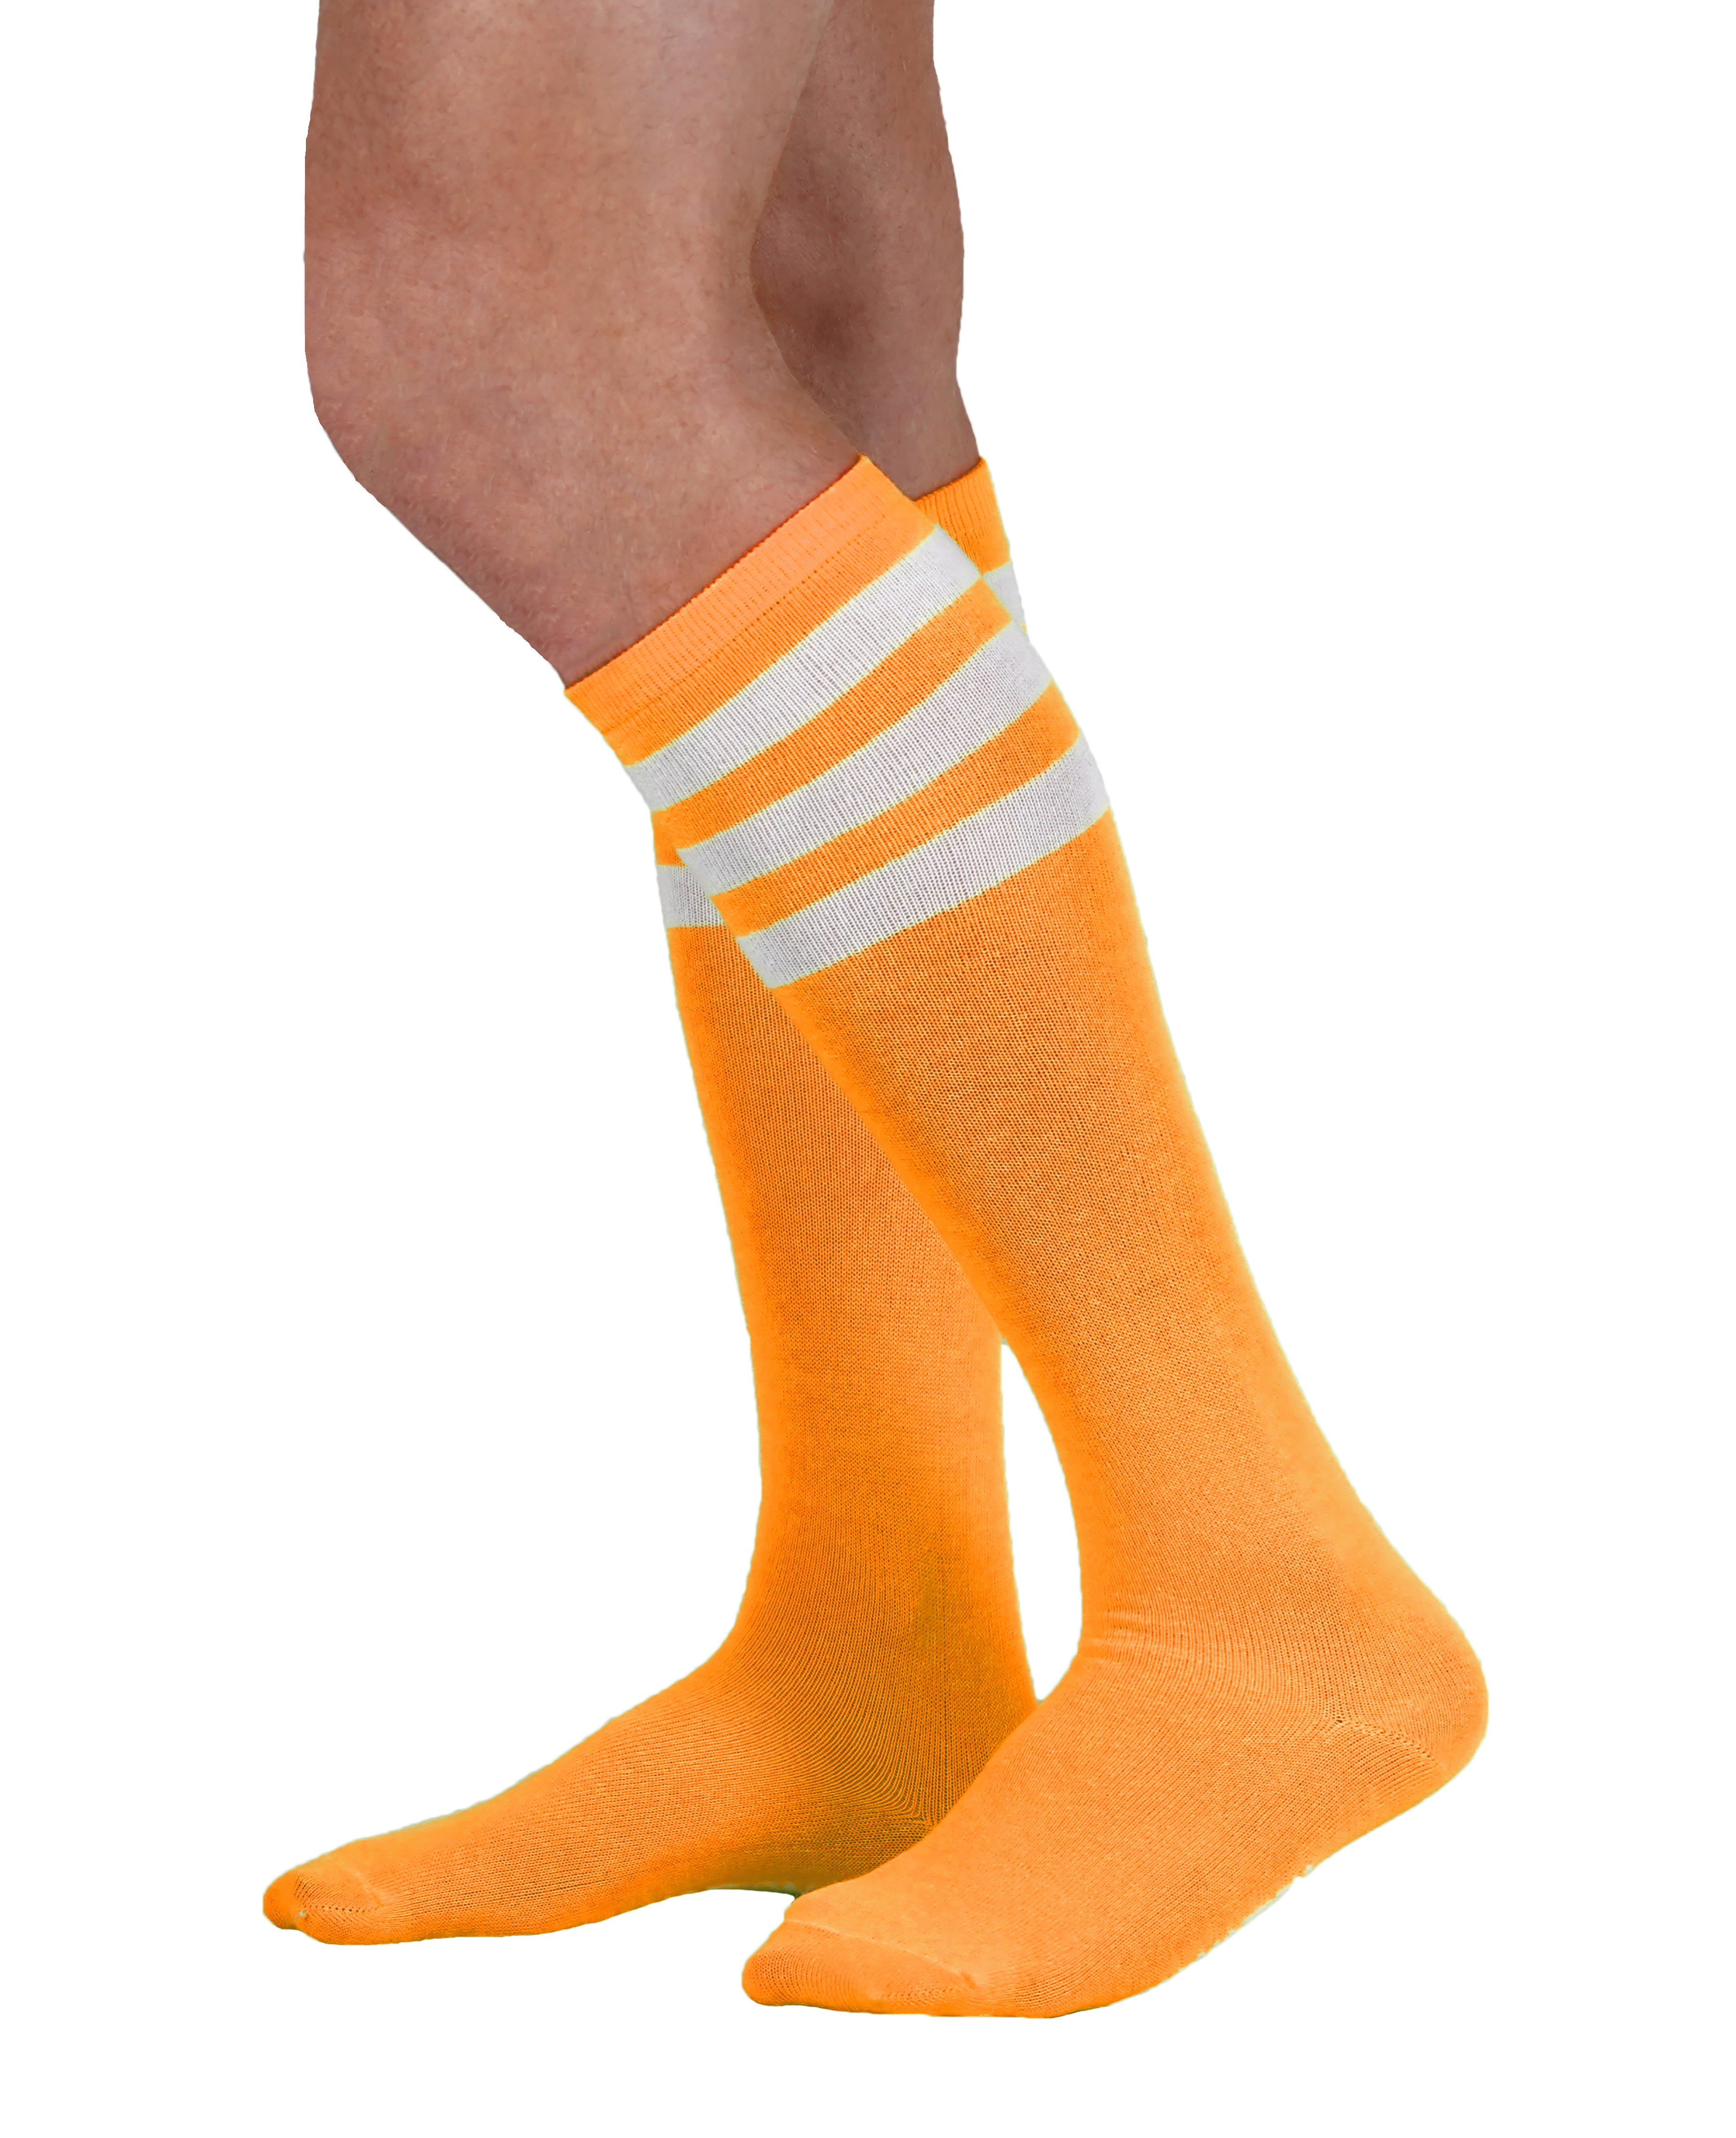 Neon Nation Colored Knee High Tube Socks with White Stripes